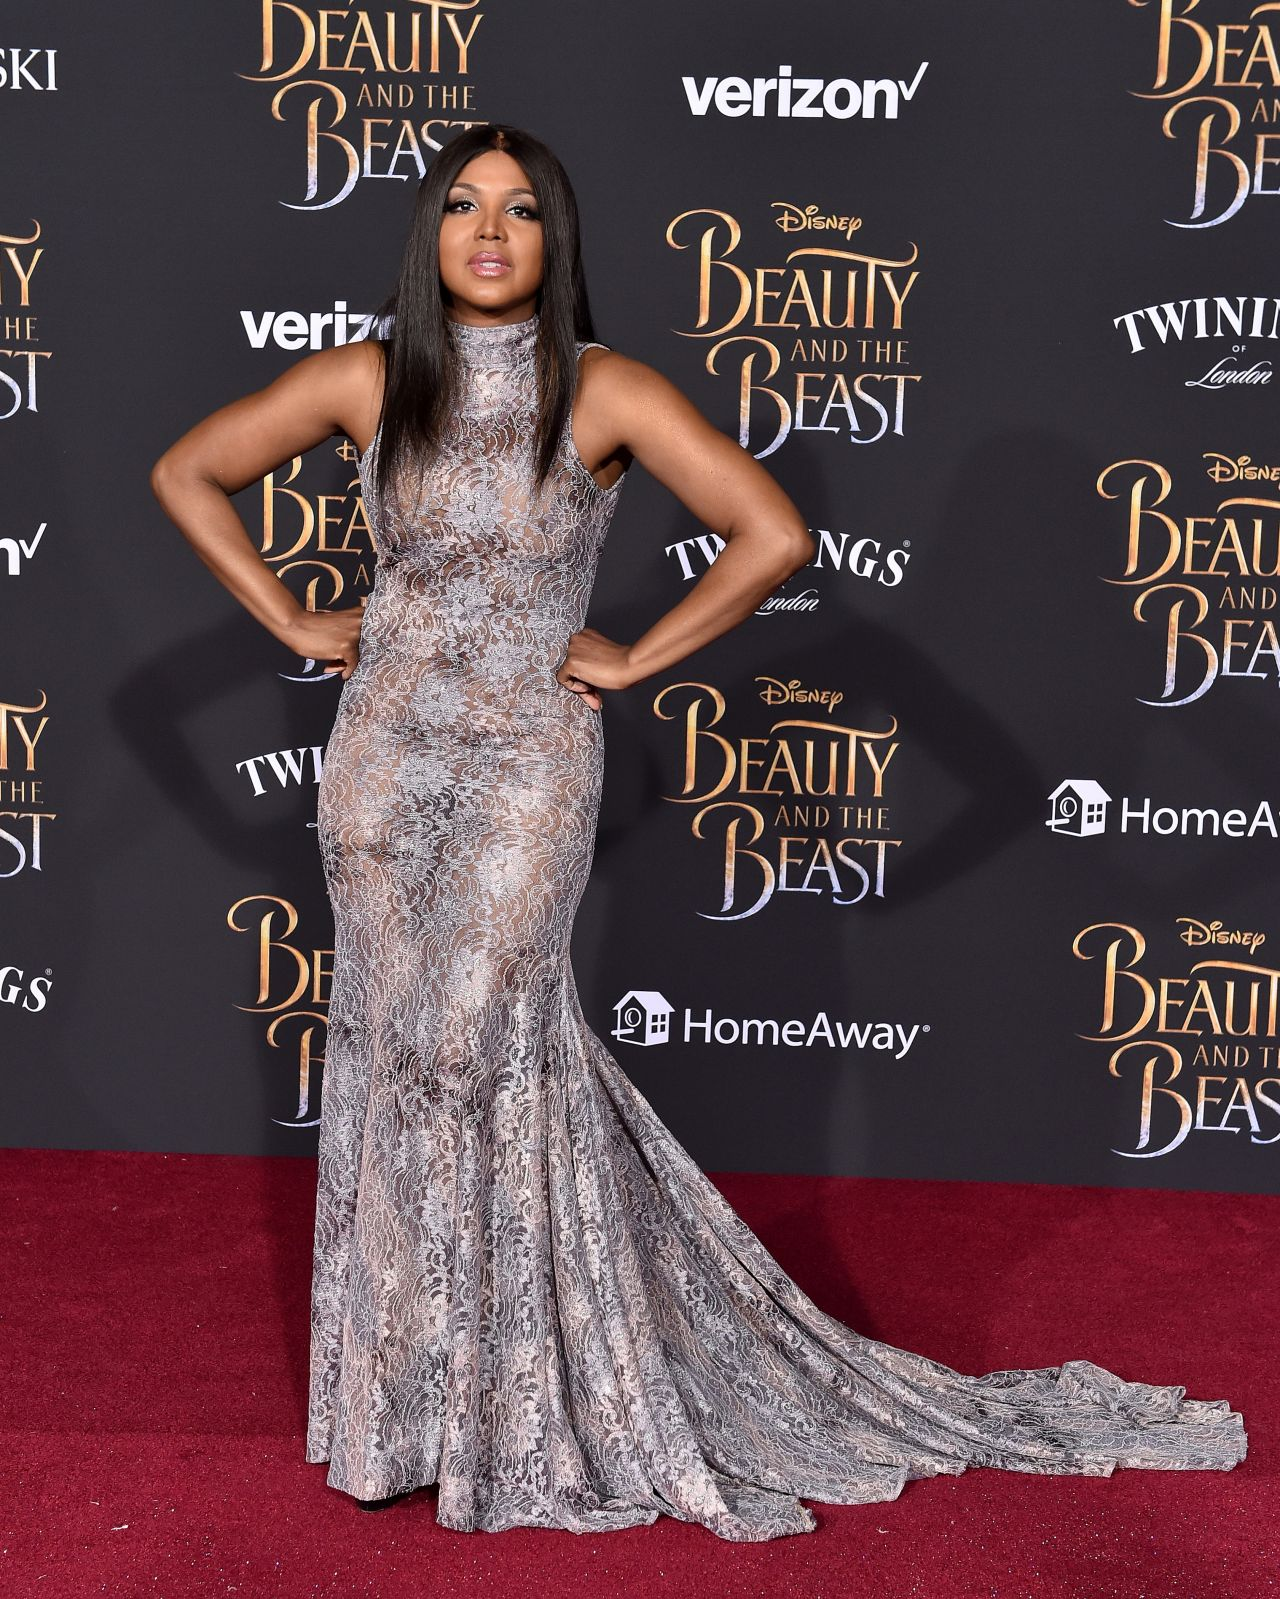 Braxton And Yancey Mid Century Modern Decor: Toni Braxton At Beauty & The Beast Premiere In Los Angeles